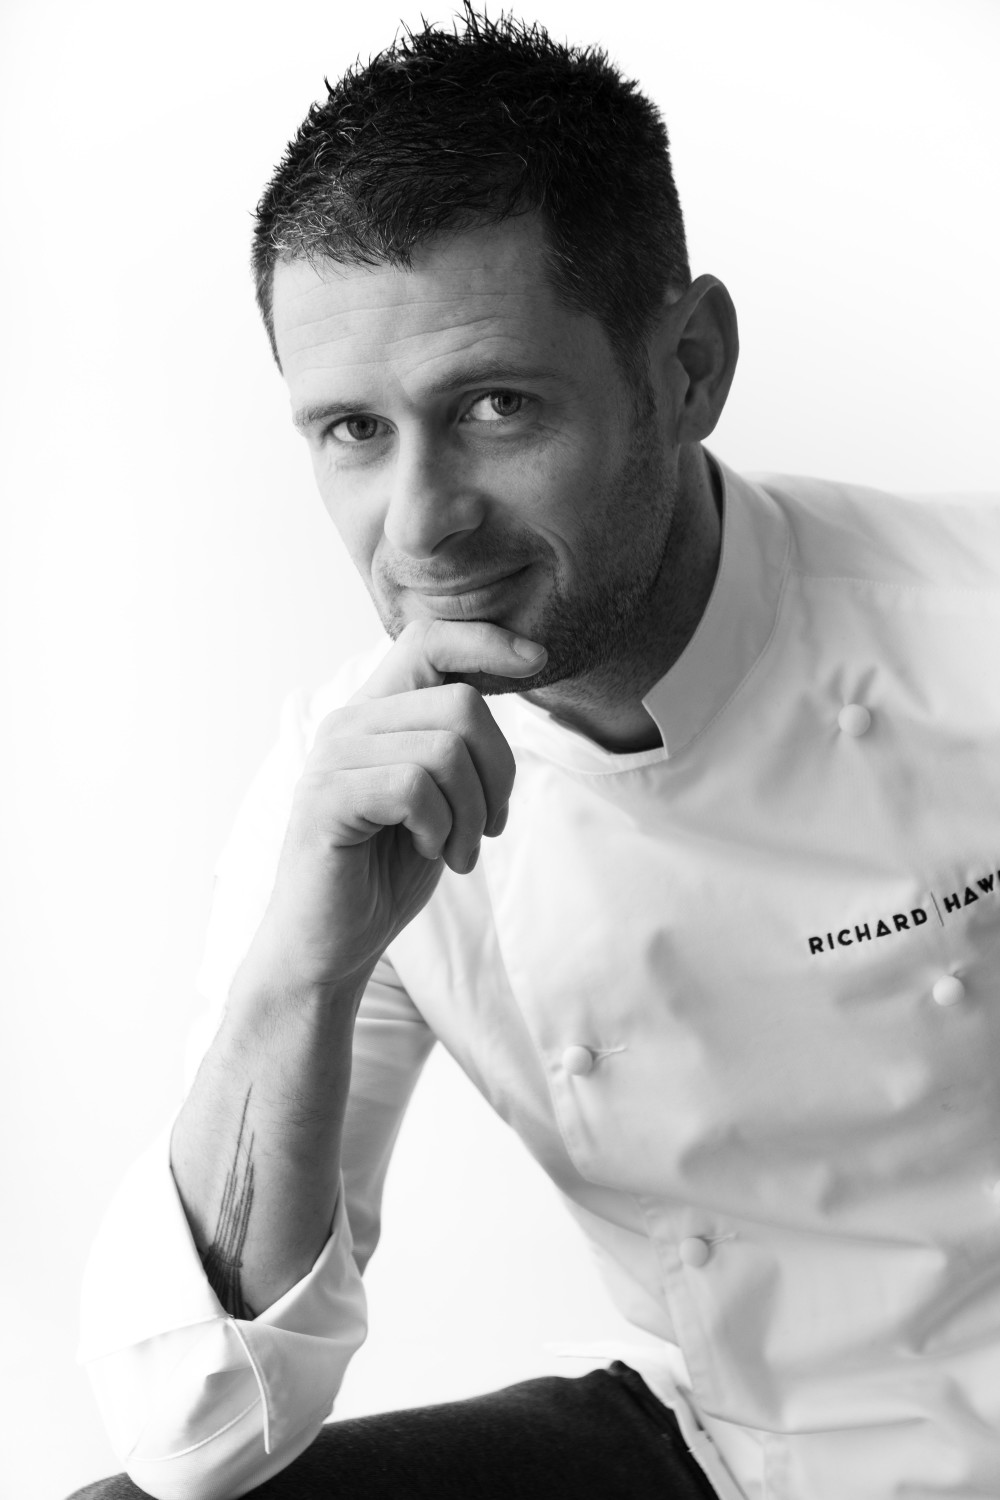 chef-richard-hawke-pastry_